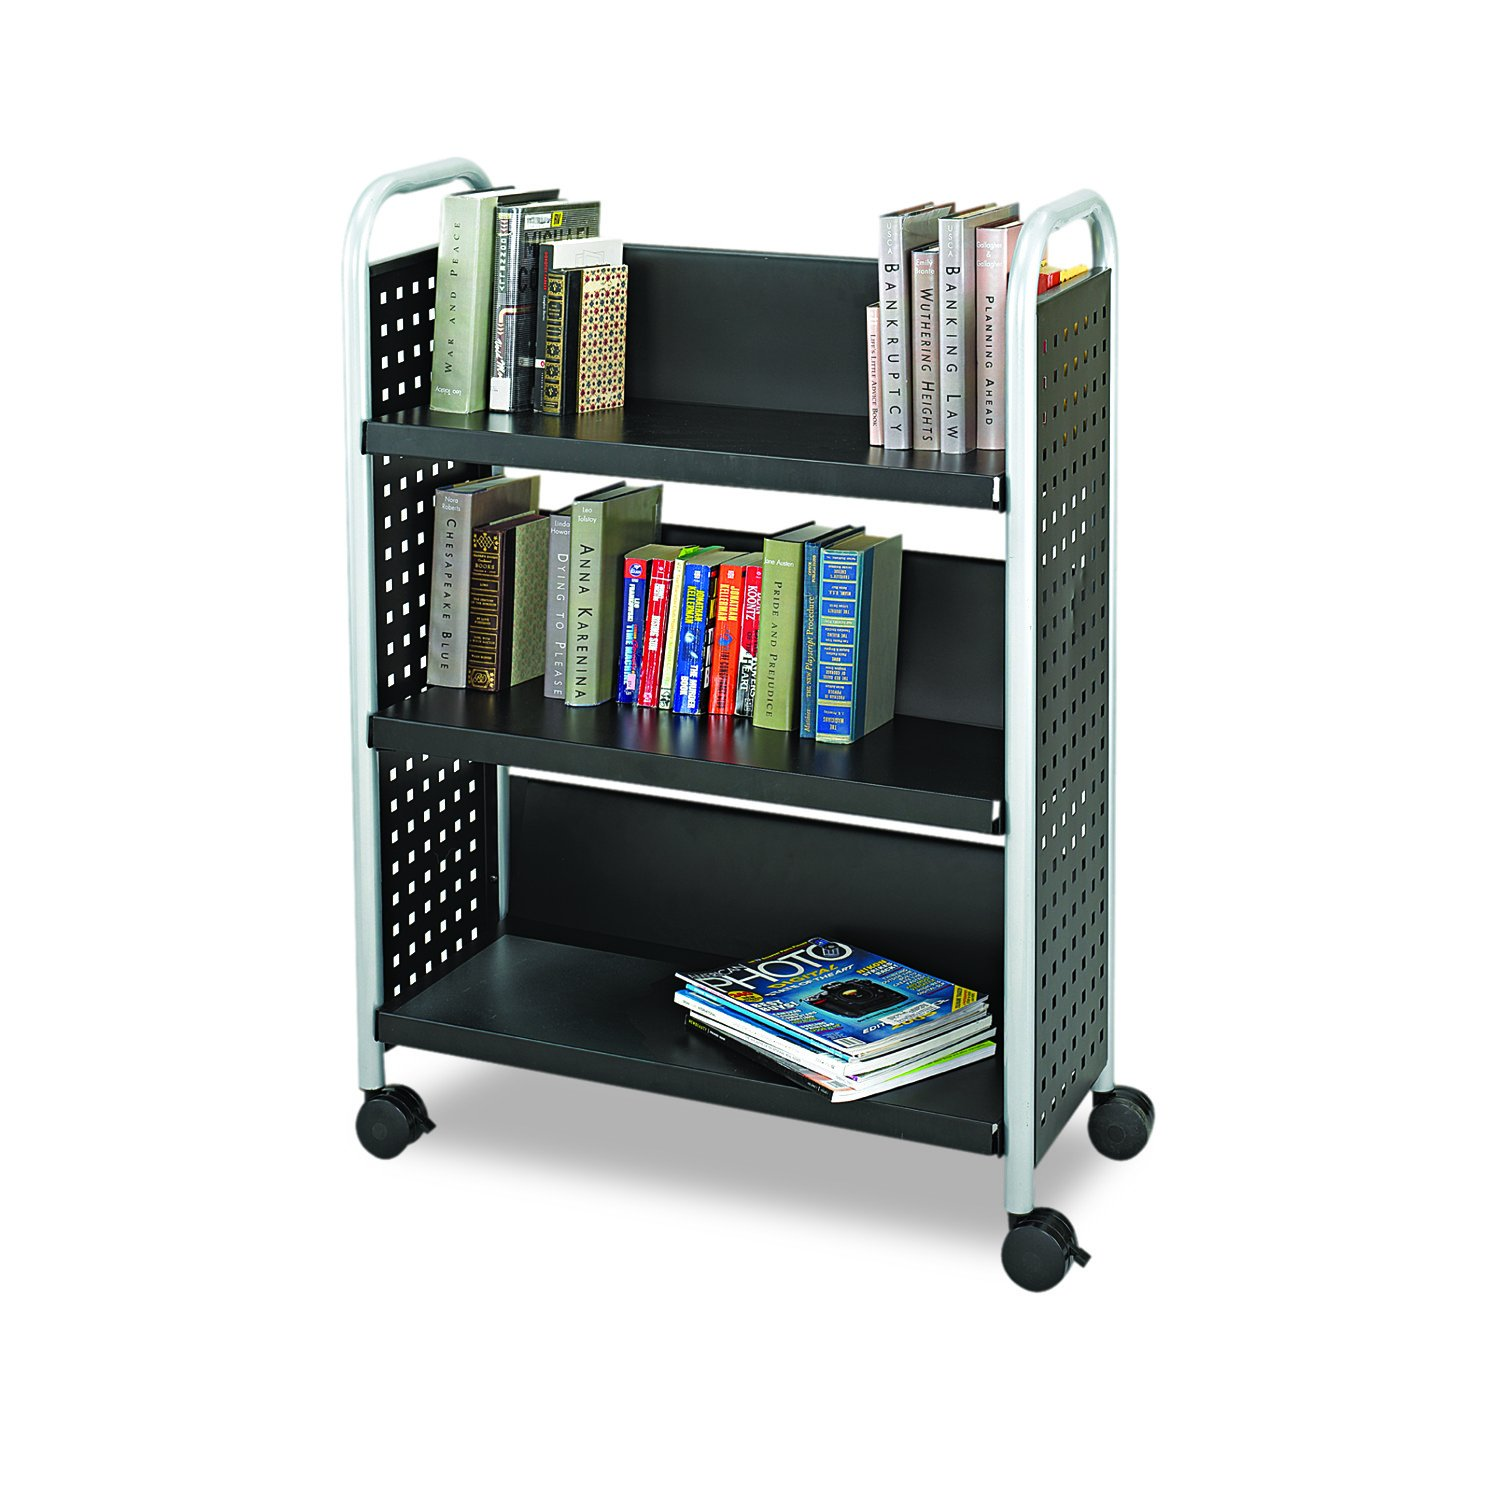 Safco Products Scoot Single-Sided Book Cart Black, Swivel Wheels, 3 Slanted Shelves by Safco